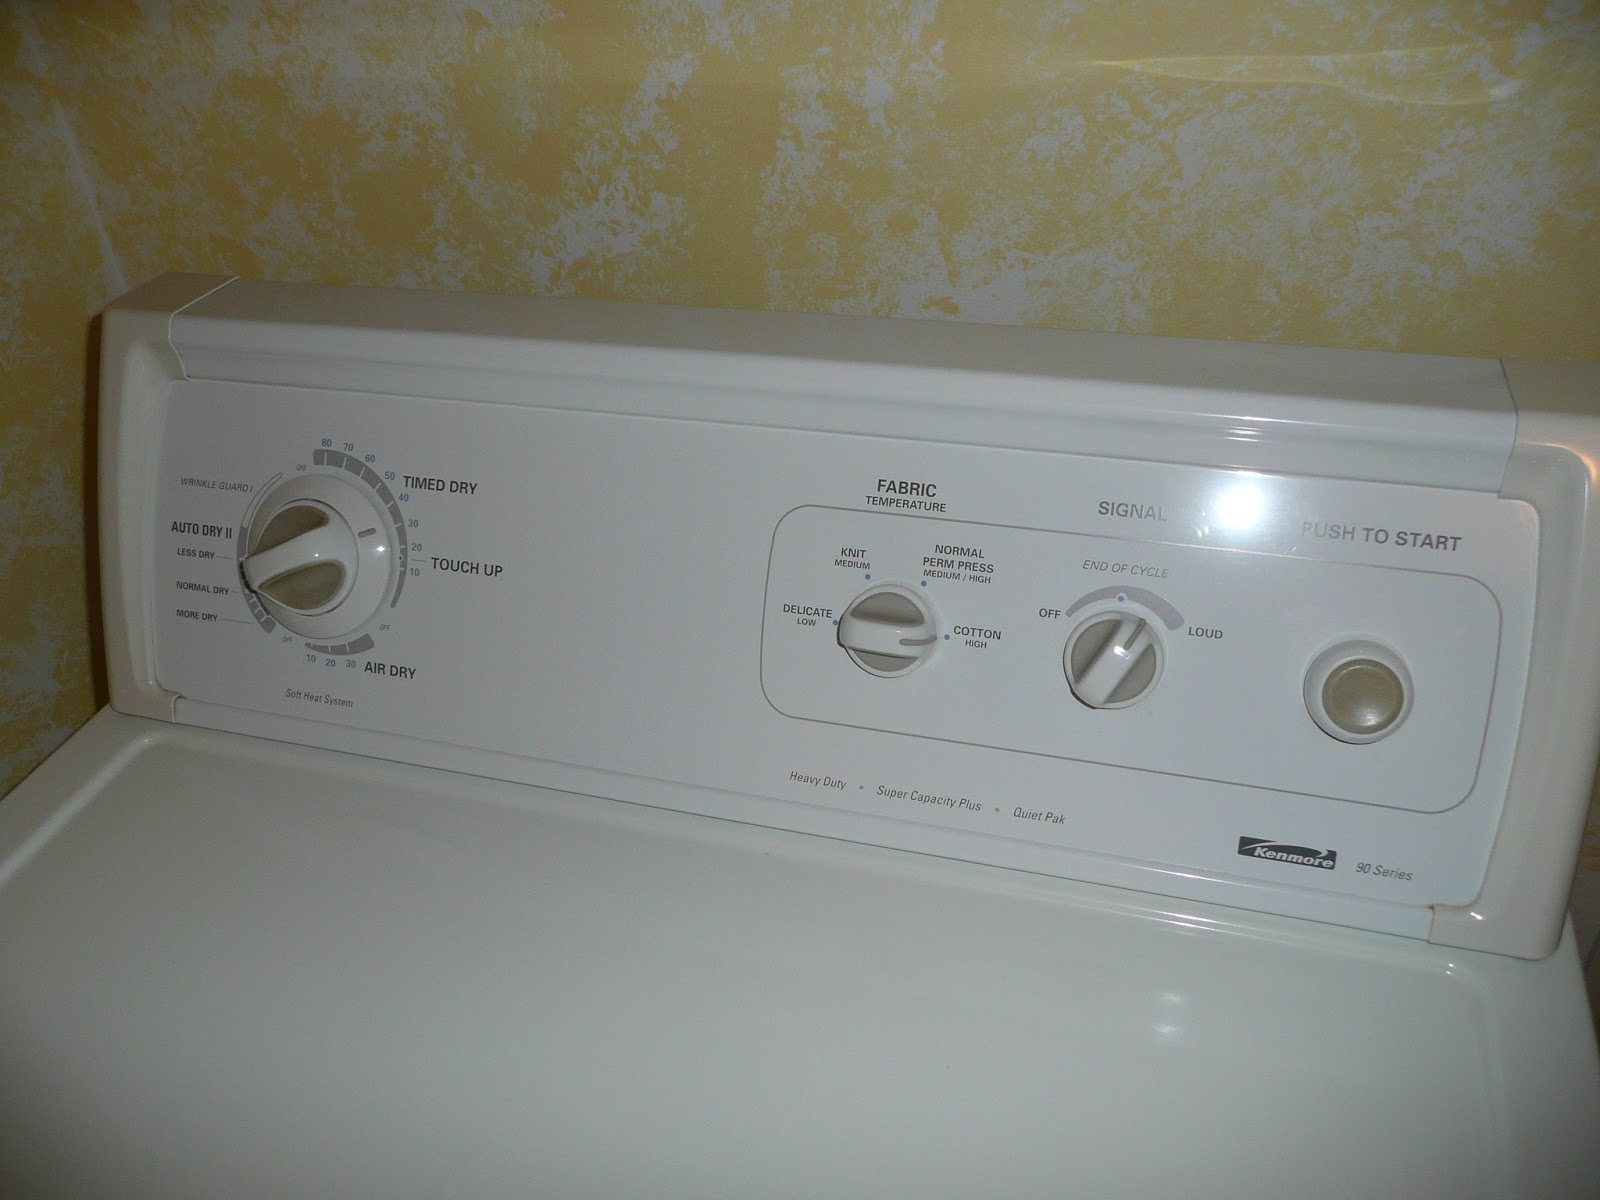 Kenmore 90 Series, Model 110 Clothes Dryer Runs But Has Stopped Heating and  drying clothes - Quick How To repair